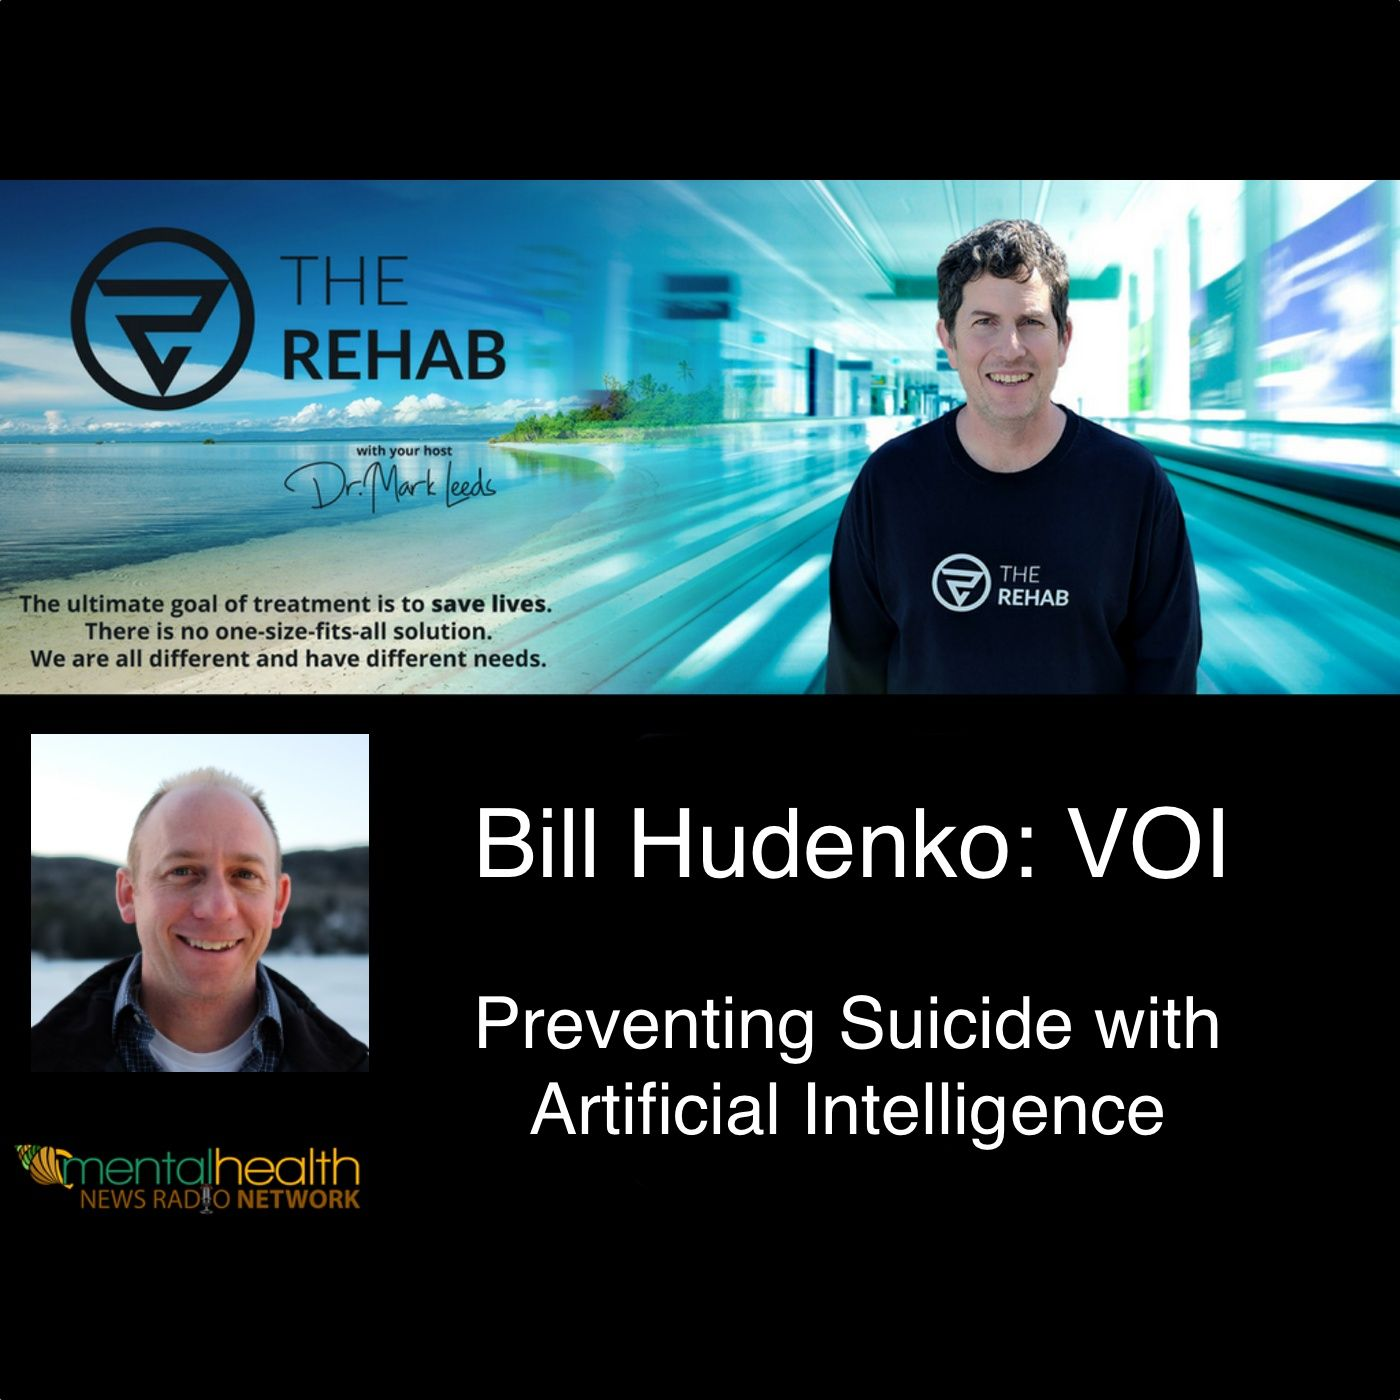 Bill_Hudenko On VOI.COM: Preventing Suicide With AI and Machine Learning